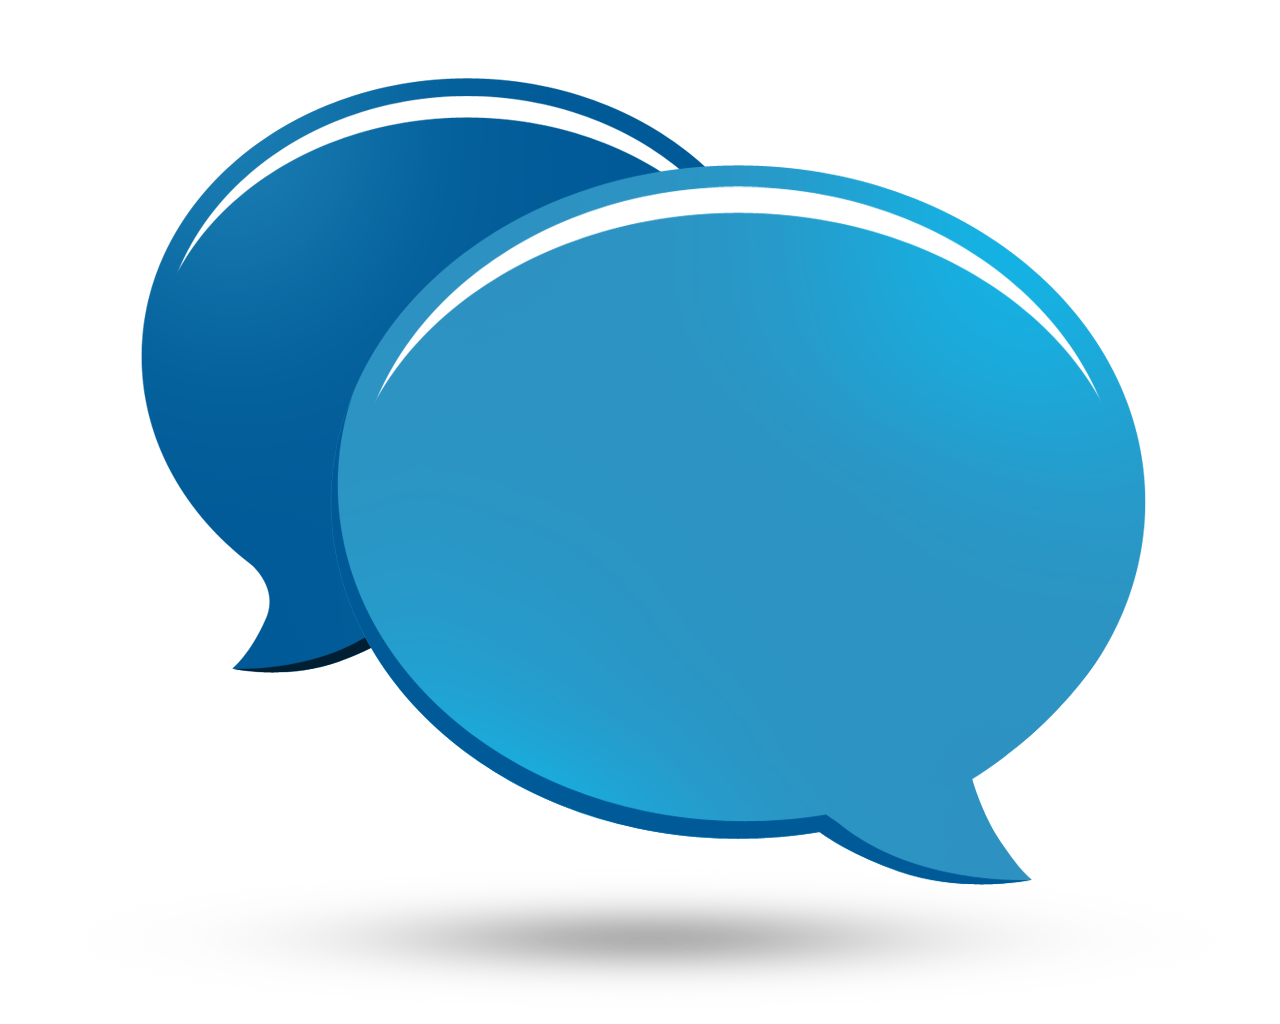 Live chat icon png. Svg free icons and